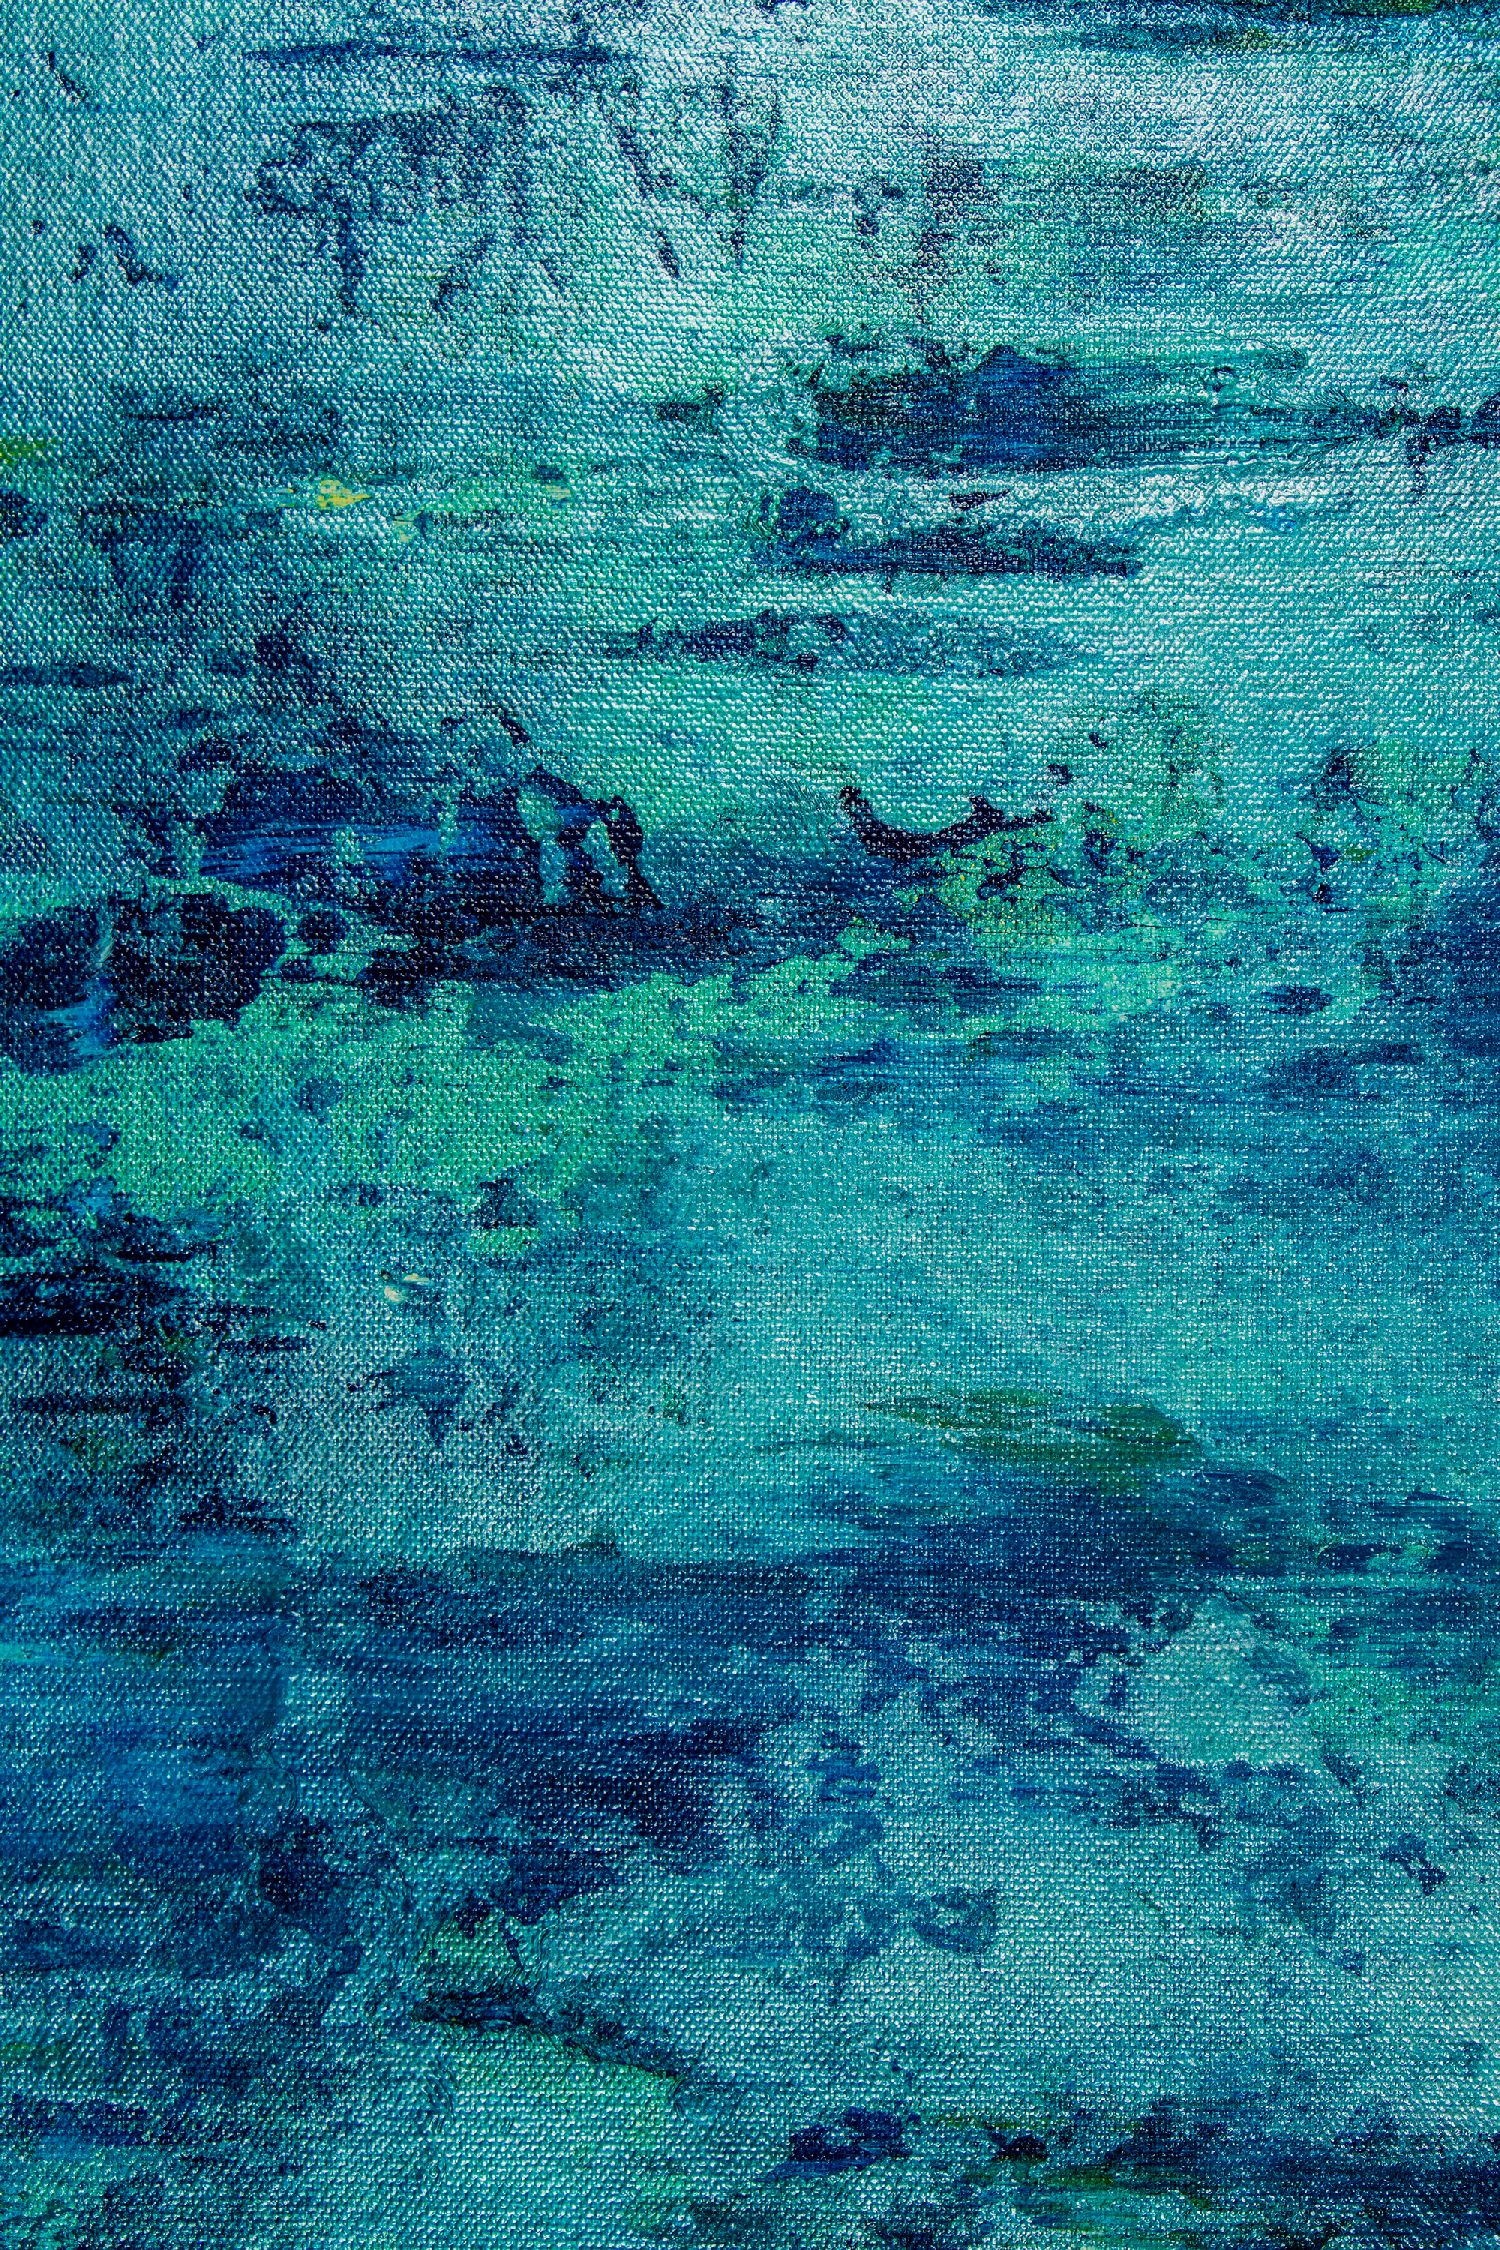 Detail / The Deepest Ocean (Turquoise spectra) 2 (2020) by Nestor Toro / SOLD